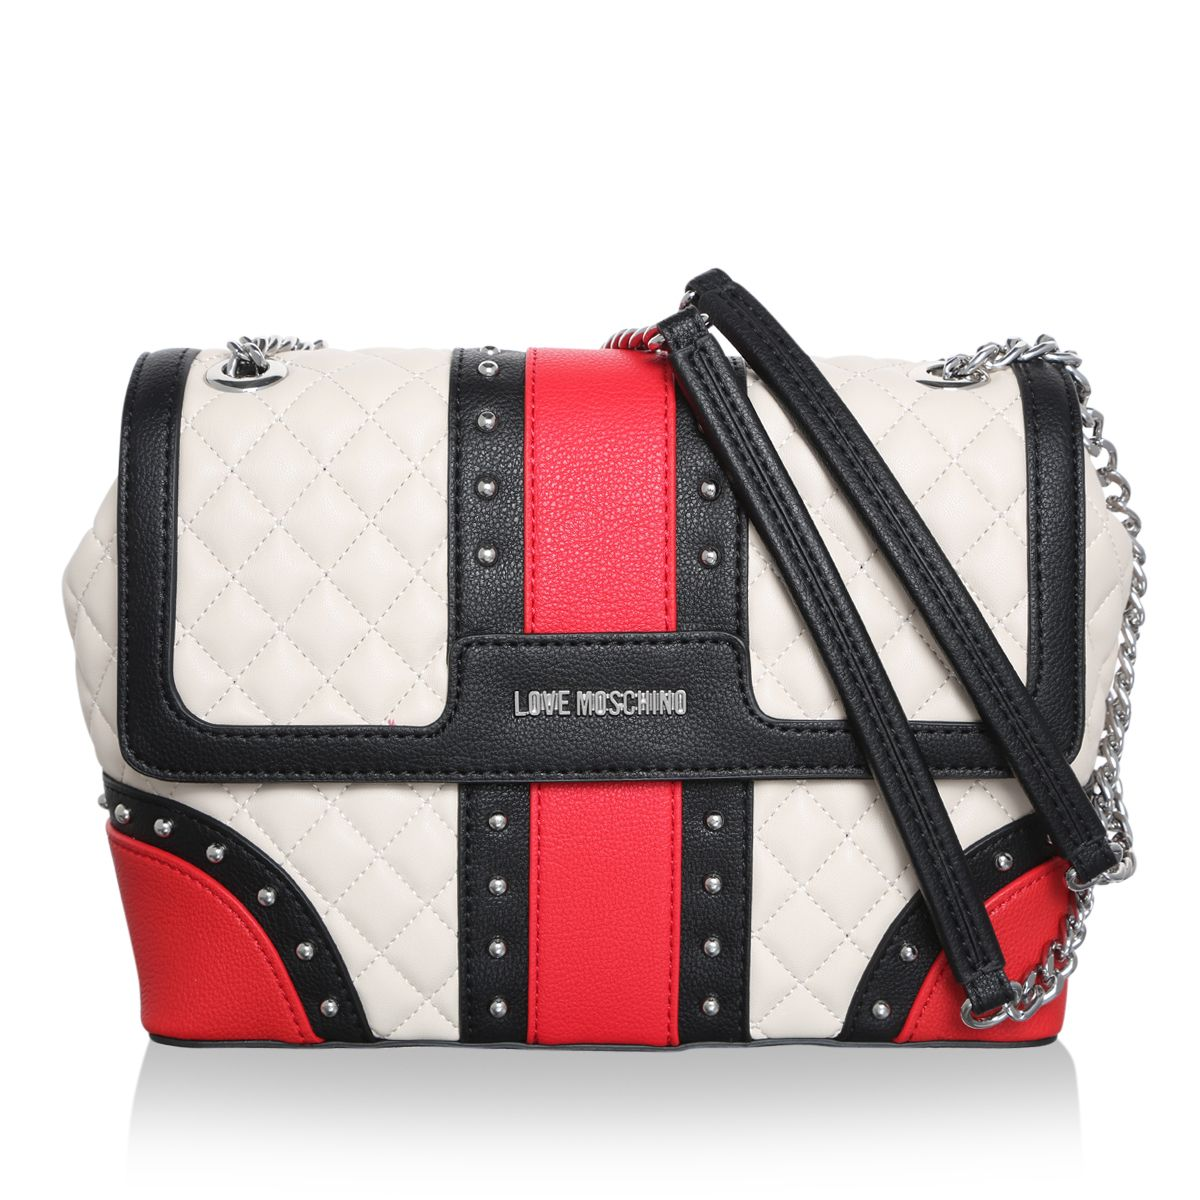 Heaven Rocks With The Urban Love Moschino Borsa Quilted Faux Leather Crossbody Bag In Black Red And White Fashionette Com